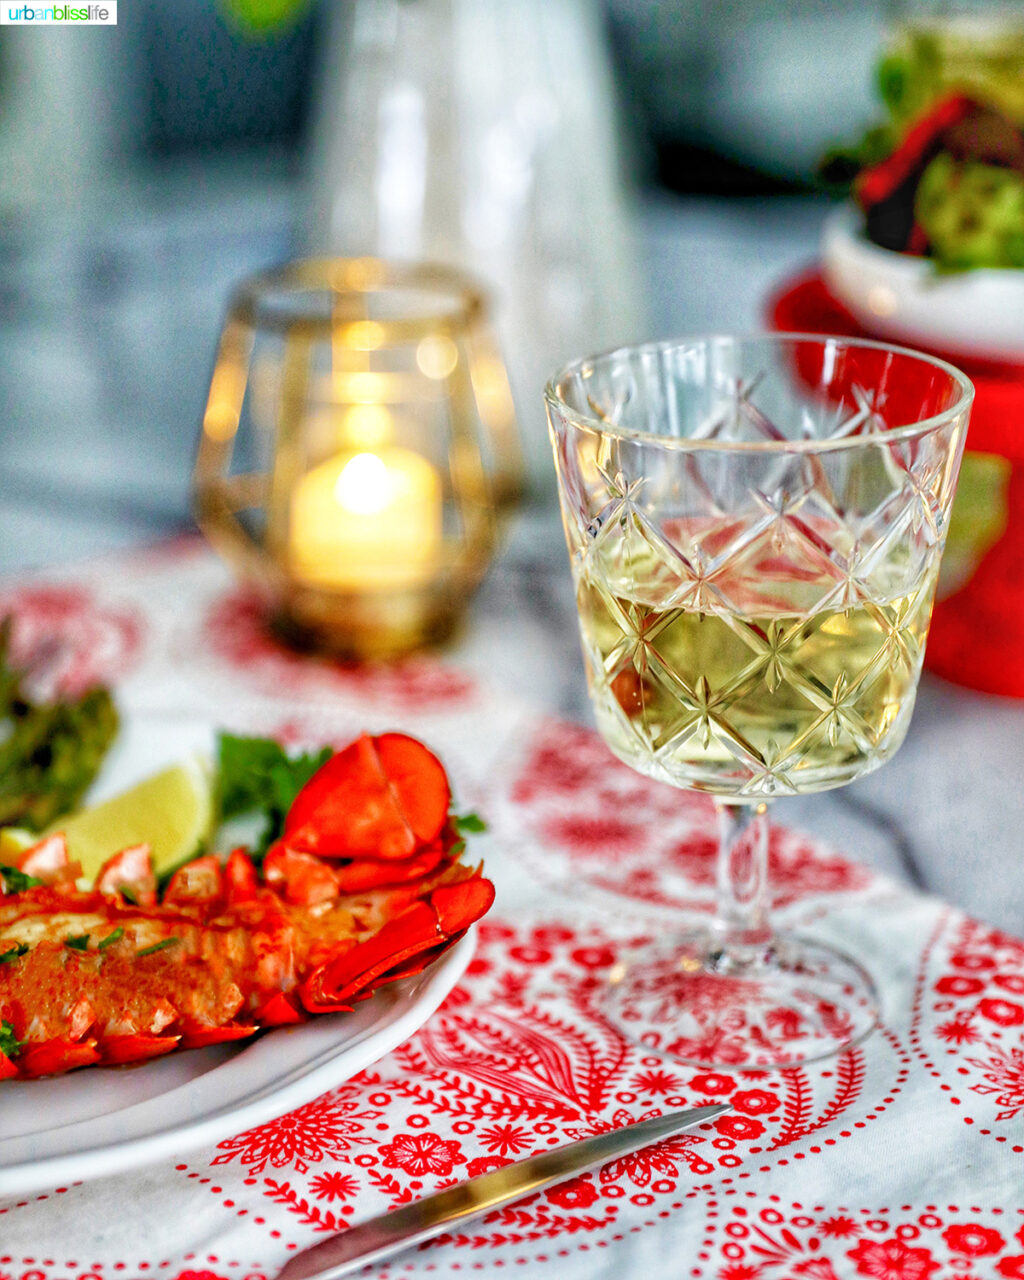 white wine with lobster tail and candle in the background